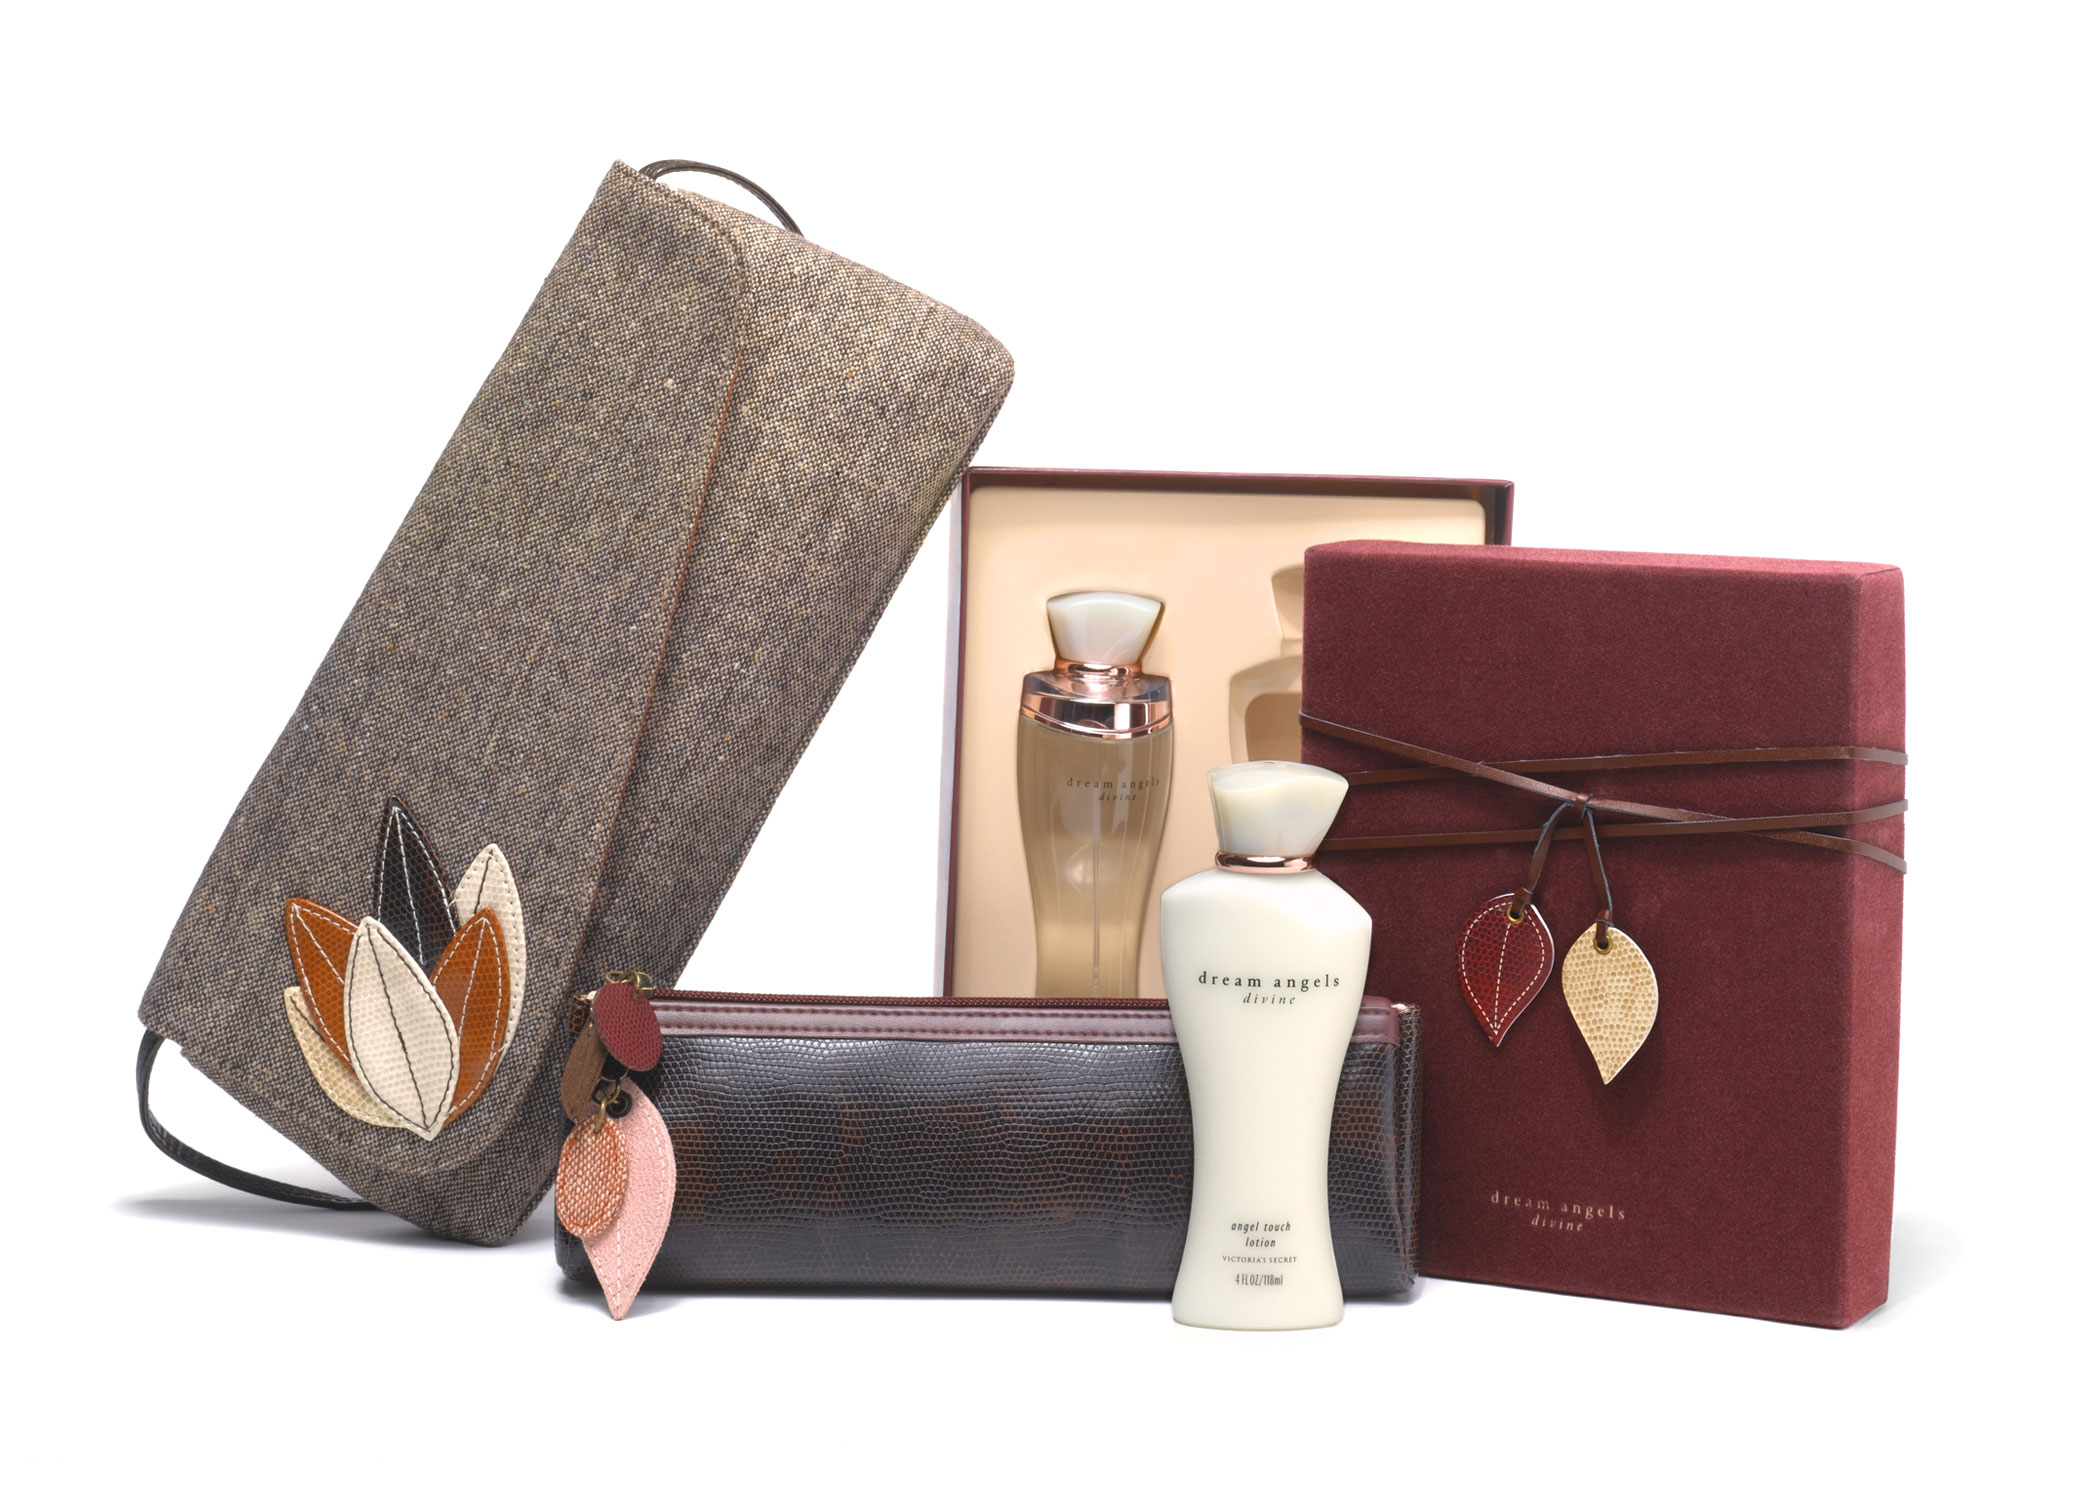 Victoria's Secret Dream Angels Fall promotion gift set with fragrances, boxes, leather pouch, and handbag in earth tones.